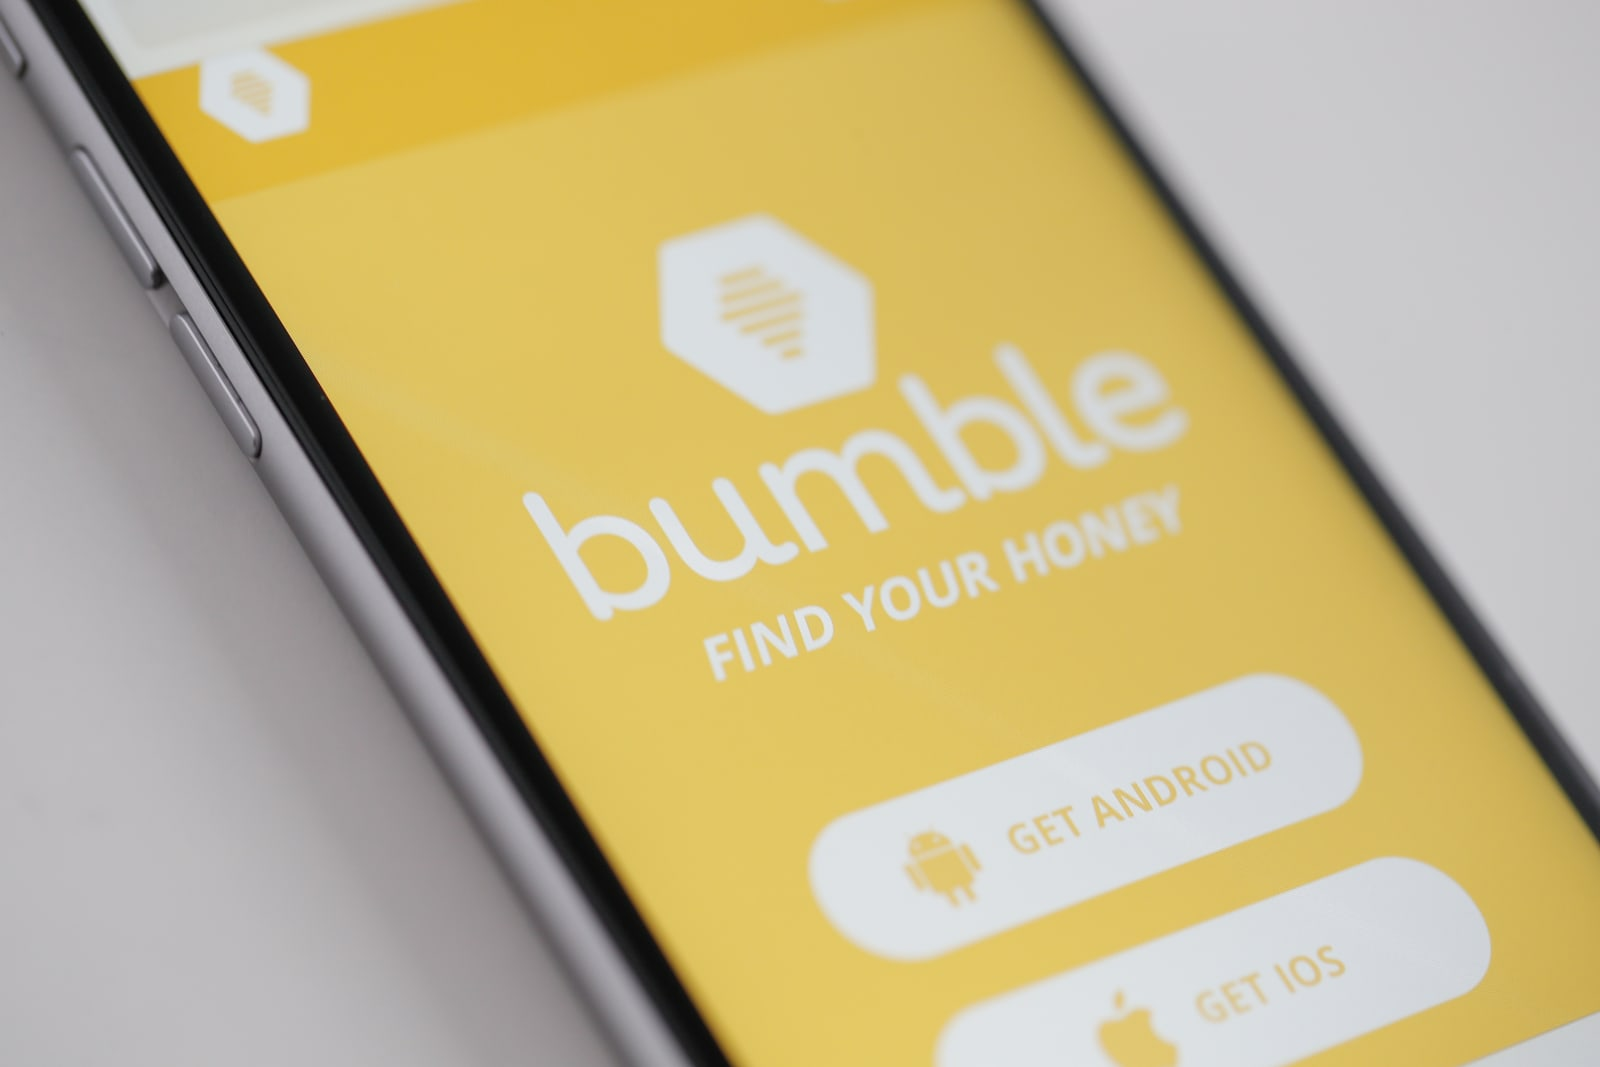 Bumble swipes left on Match Groups lawsuit allegations